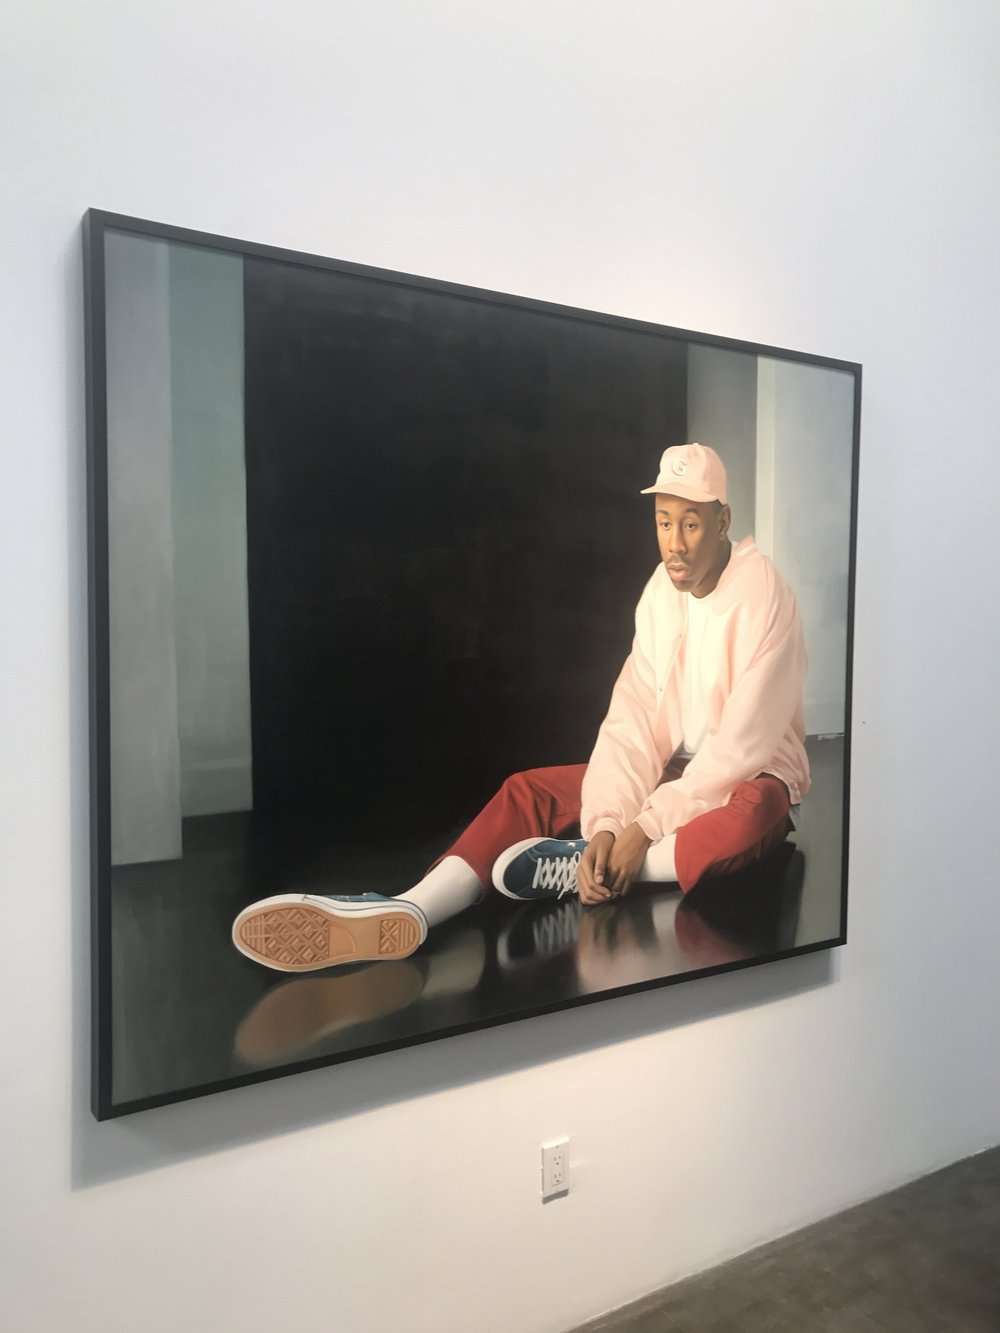 Delfin Finley's Just Getting Started - The 23-year-old artists's inaugural show,